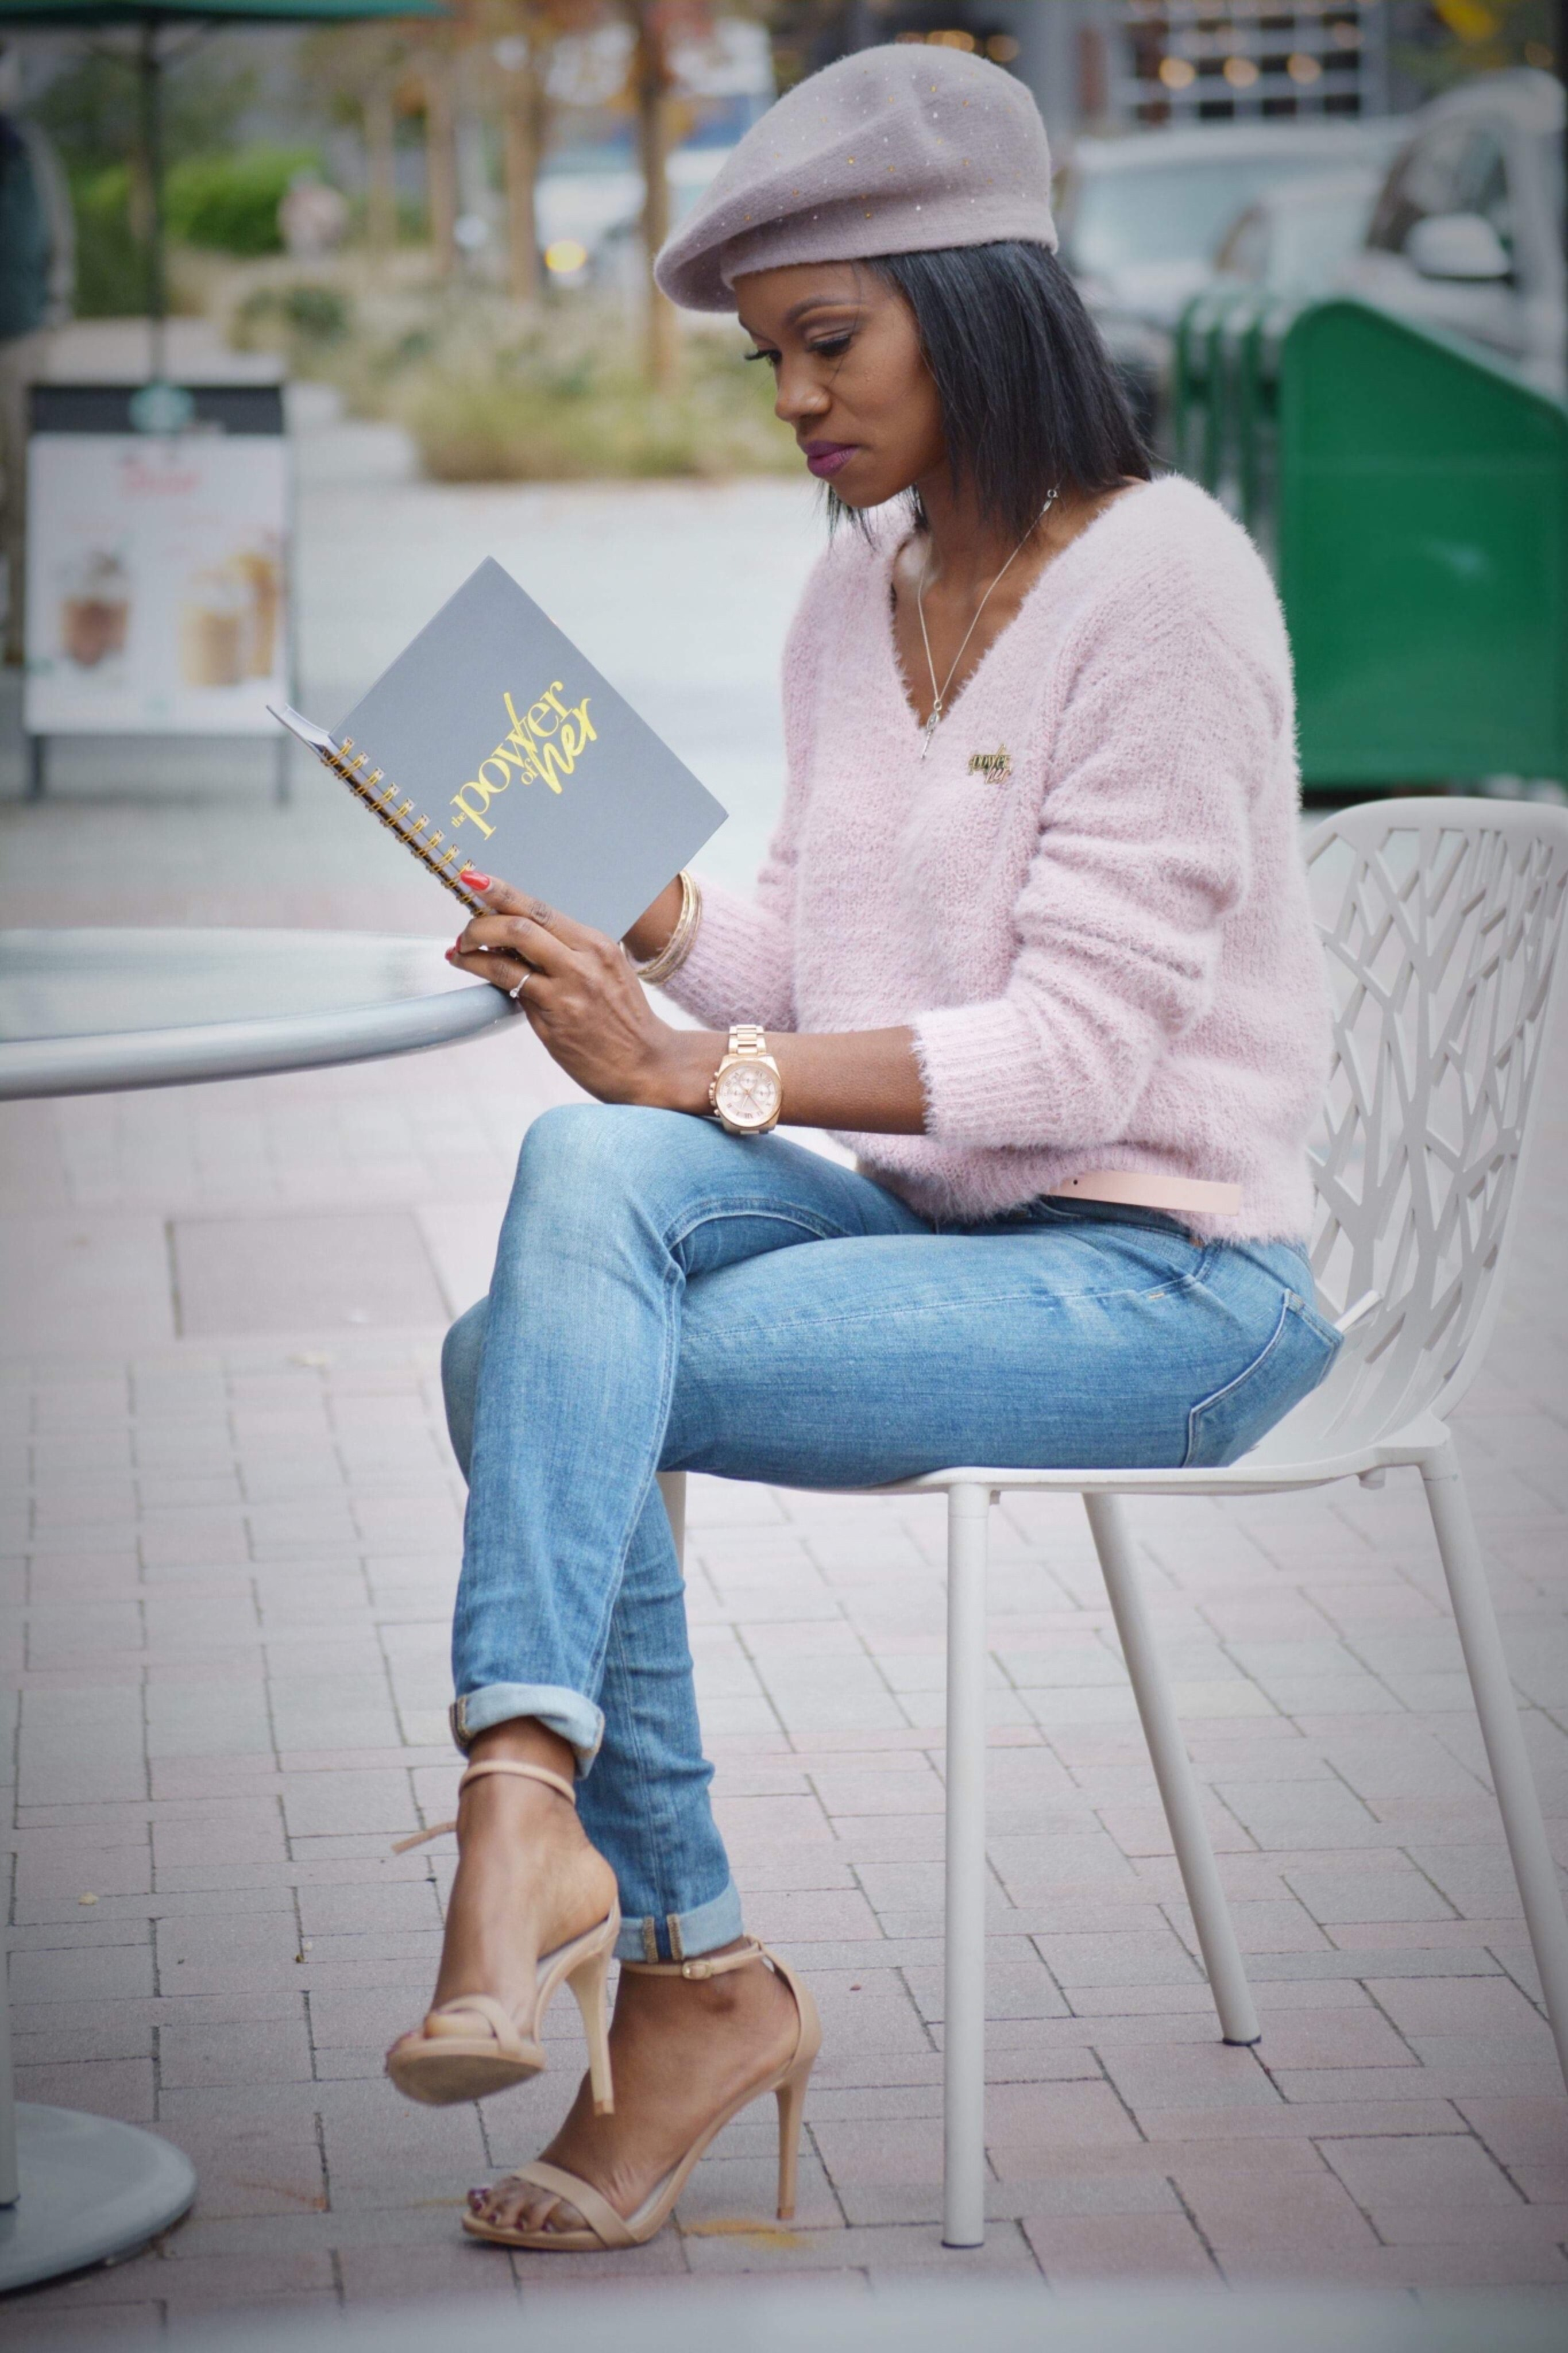 Power of Her Journal